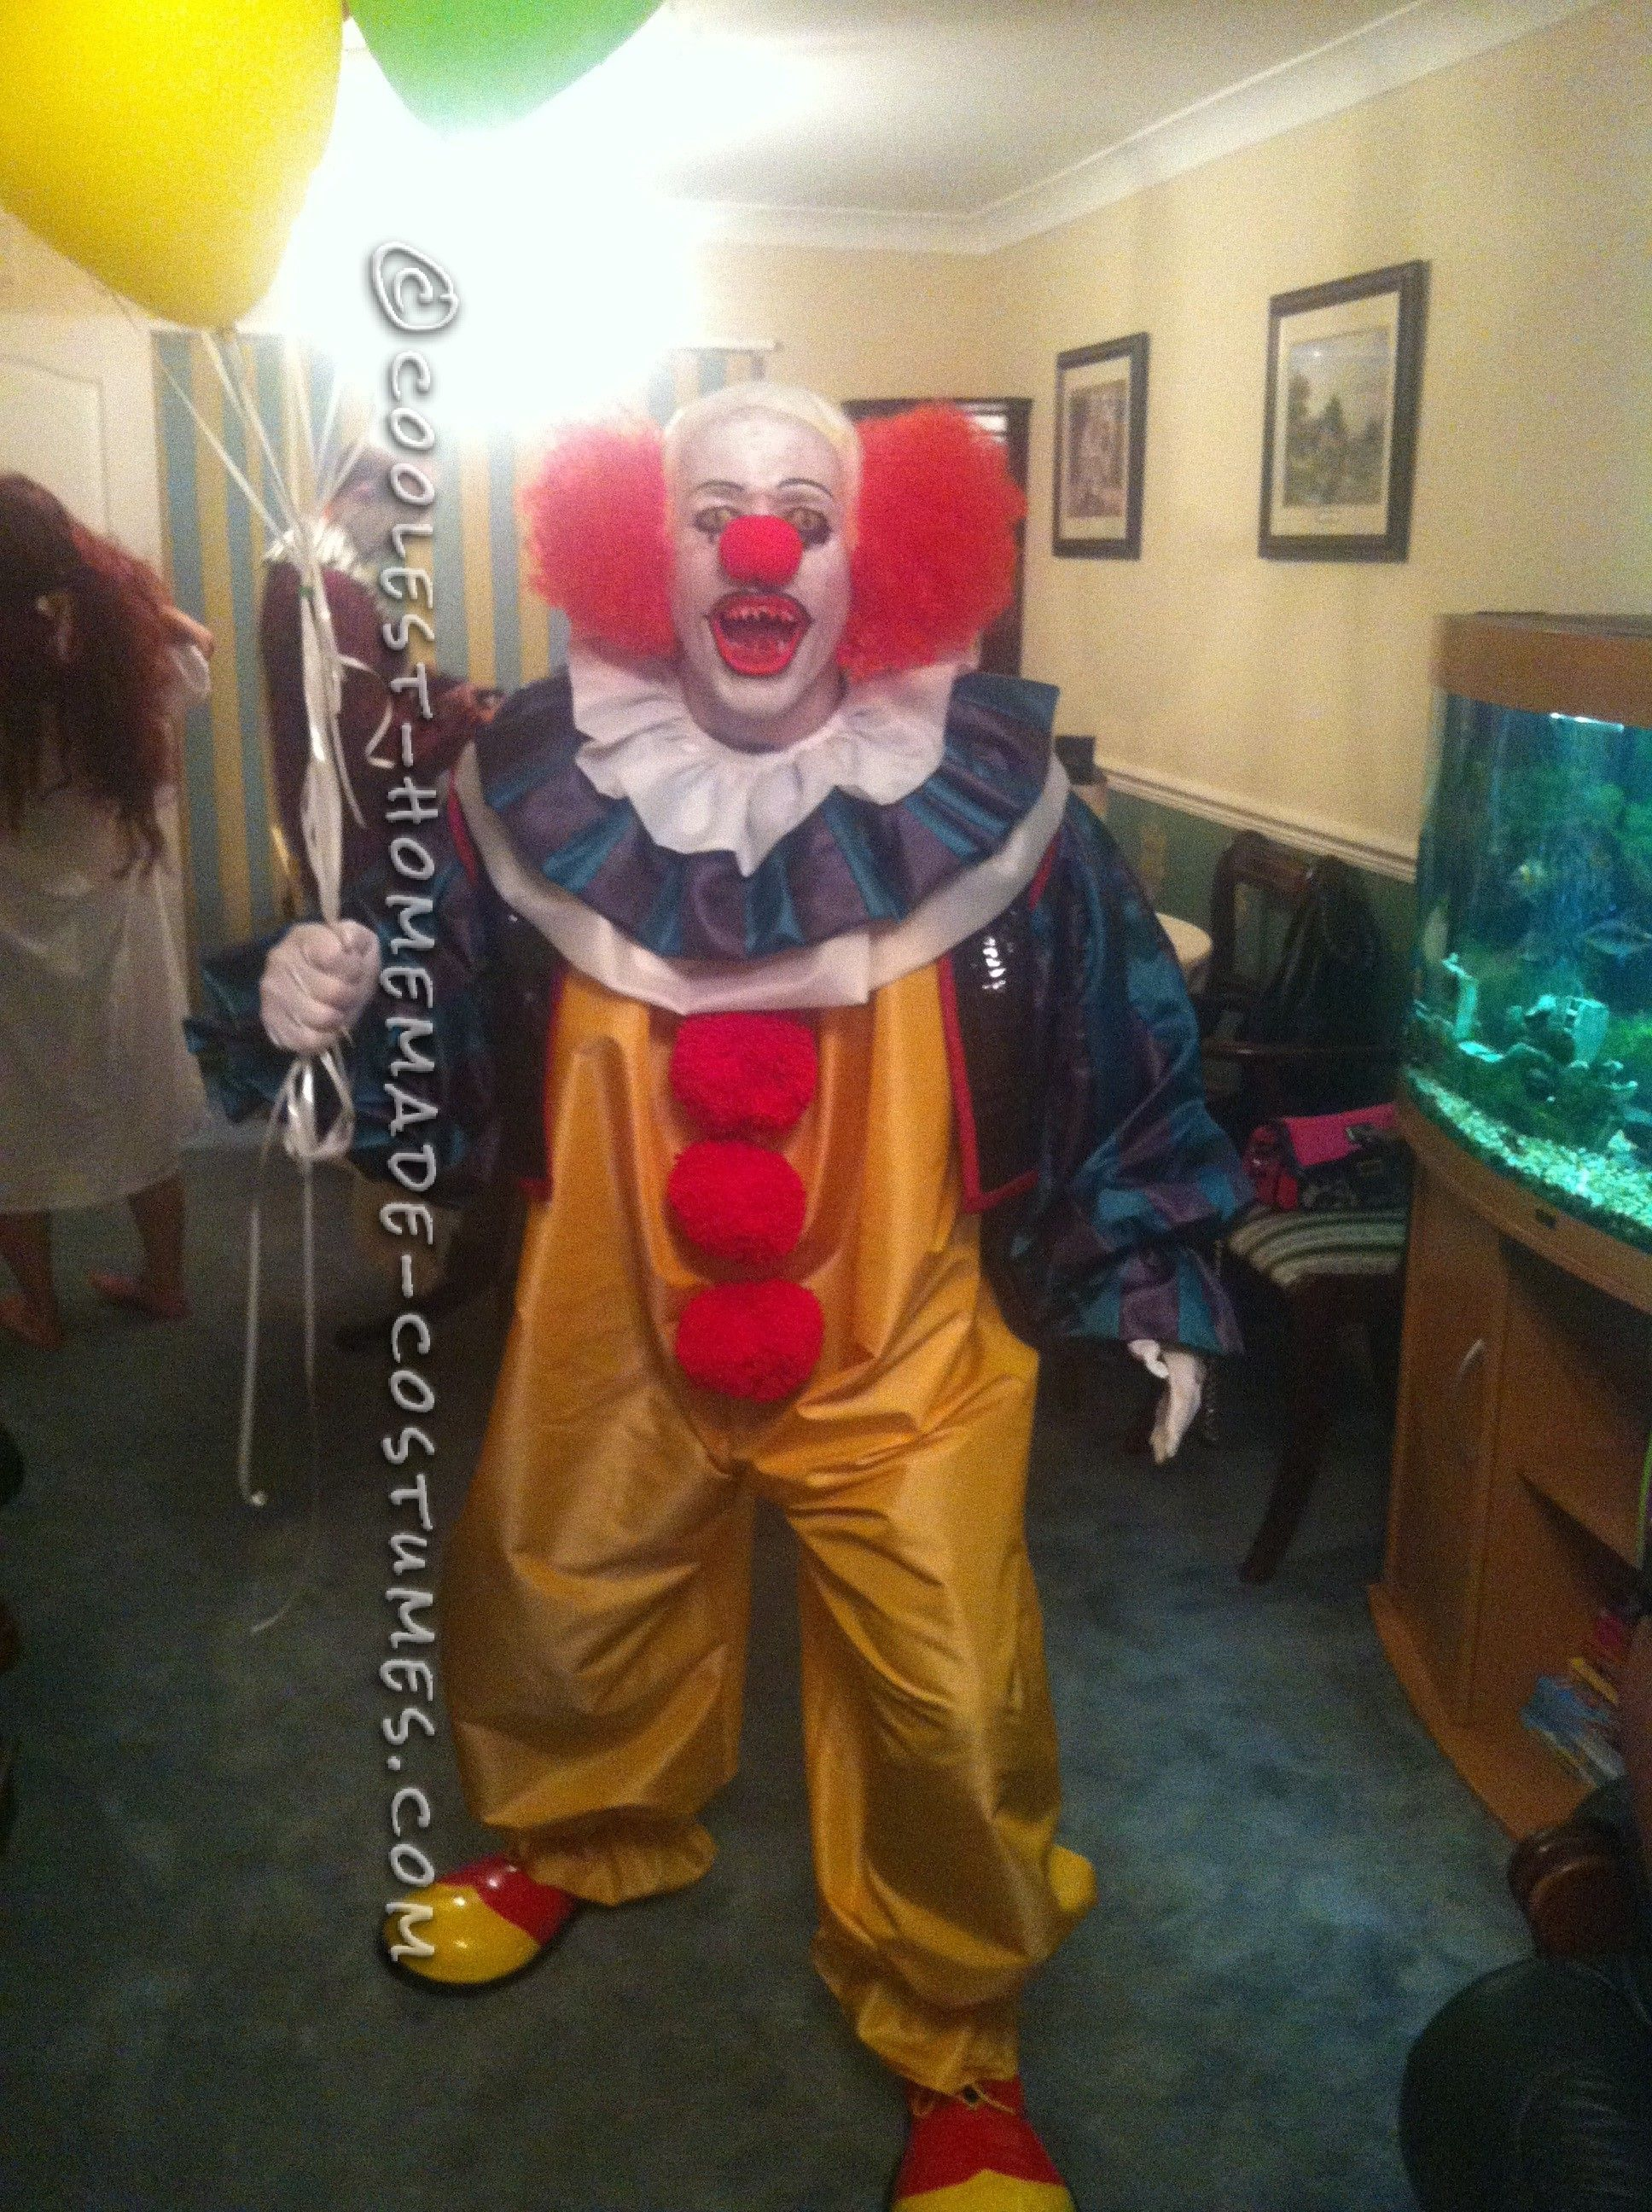 Coolest Homemade Pennywise the Clown Costume... This